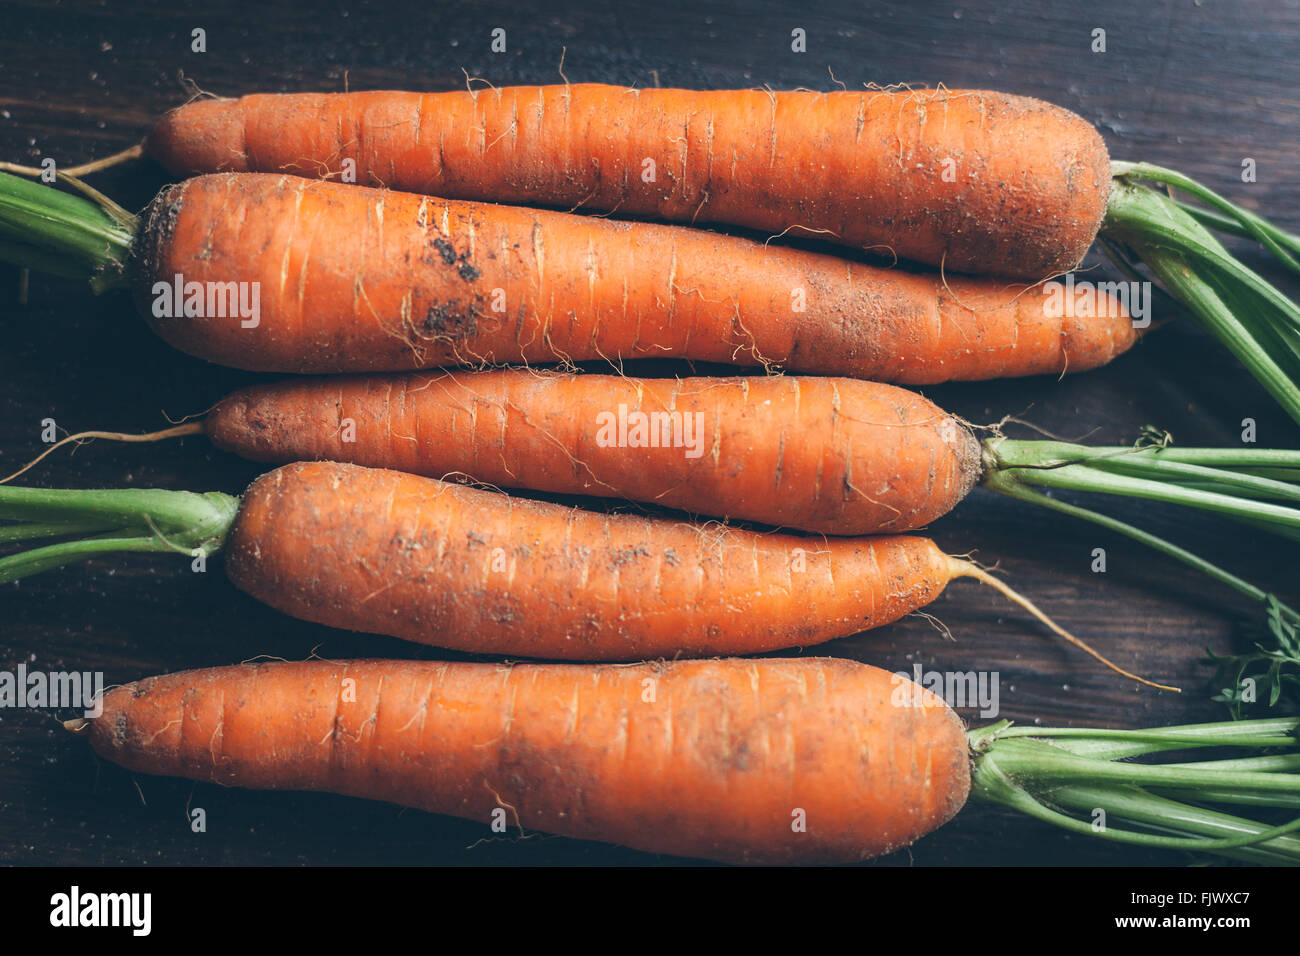 Portrait de carottes sur la table Photo Stock